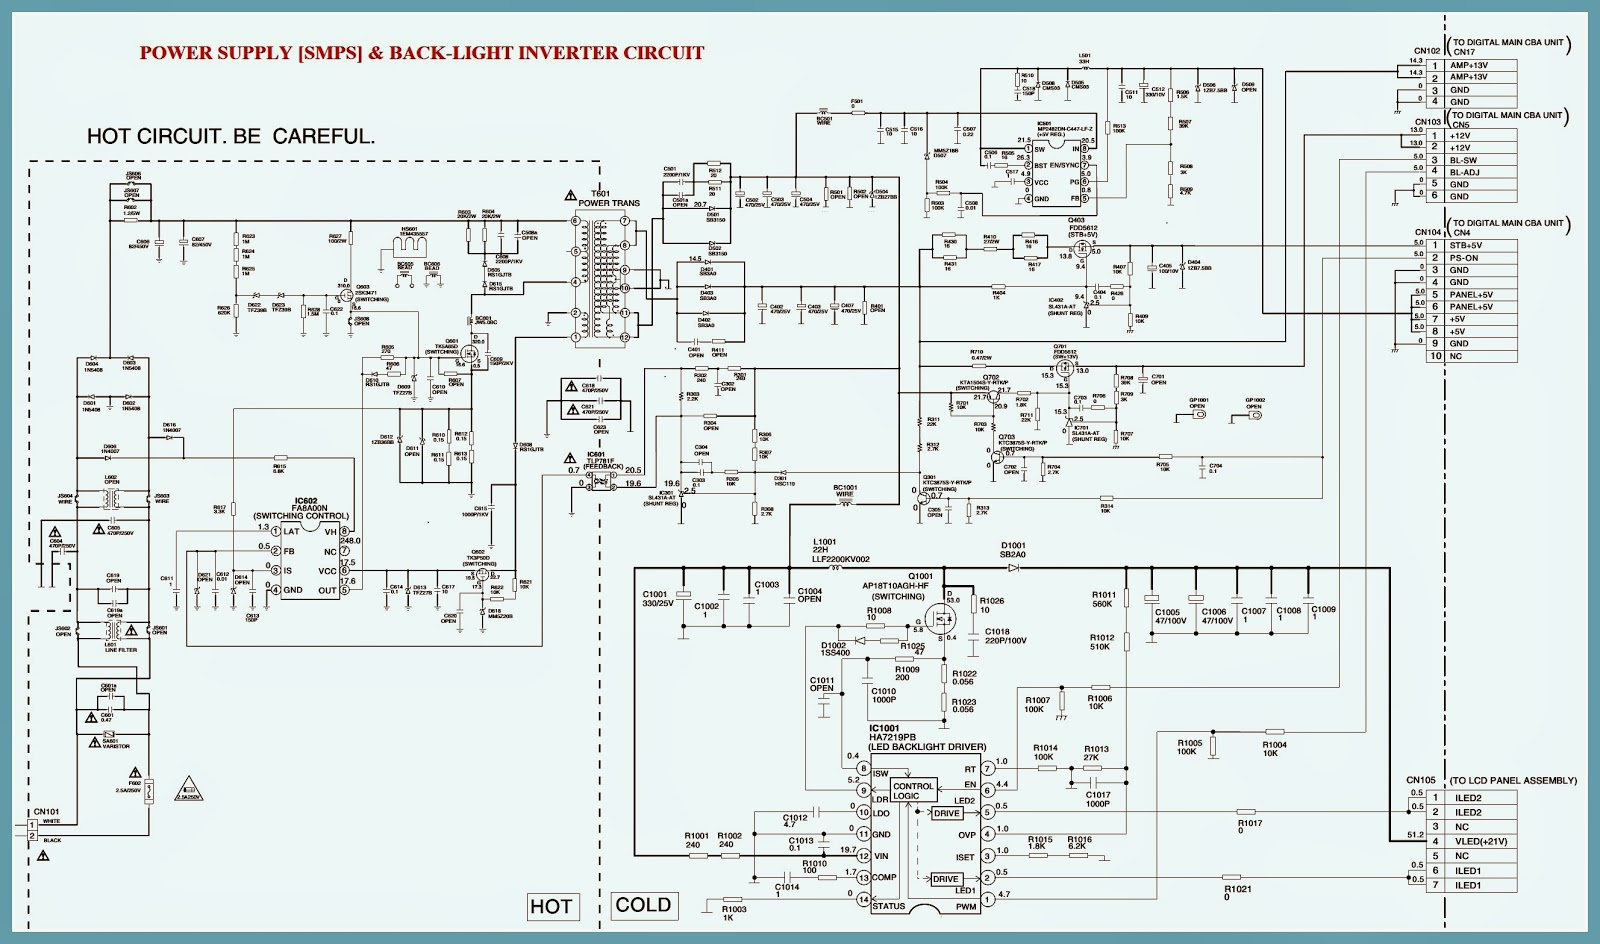 POWER%2B%26%2BBACKLIGHT%2BINVERTER%2BSCHEMATIC electro help samsung led tv wiring diagram at bakdesigns.co